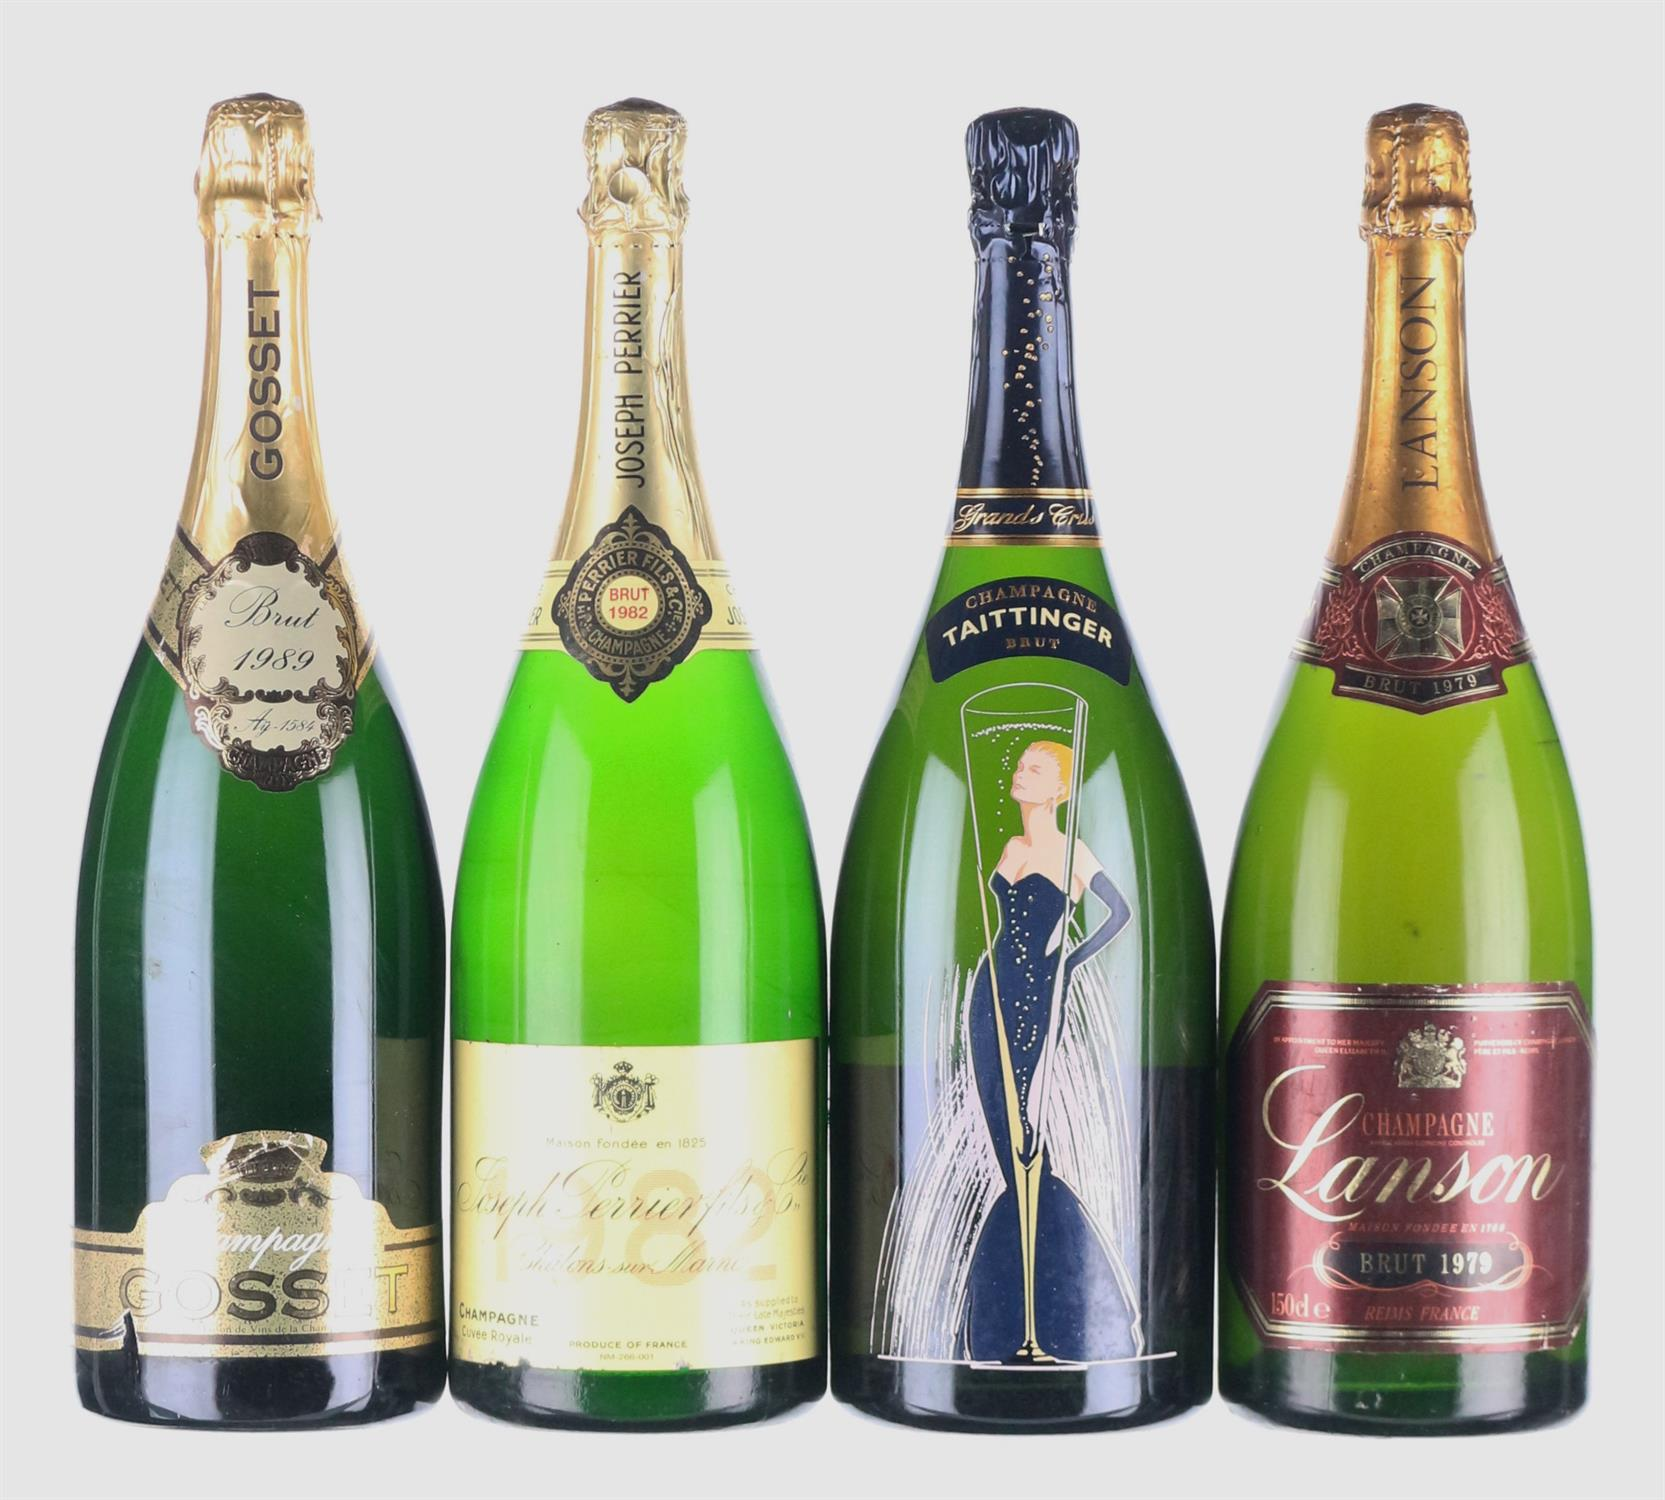 Lot 27 - Mixed Vintage Champagne Magnums